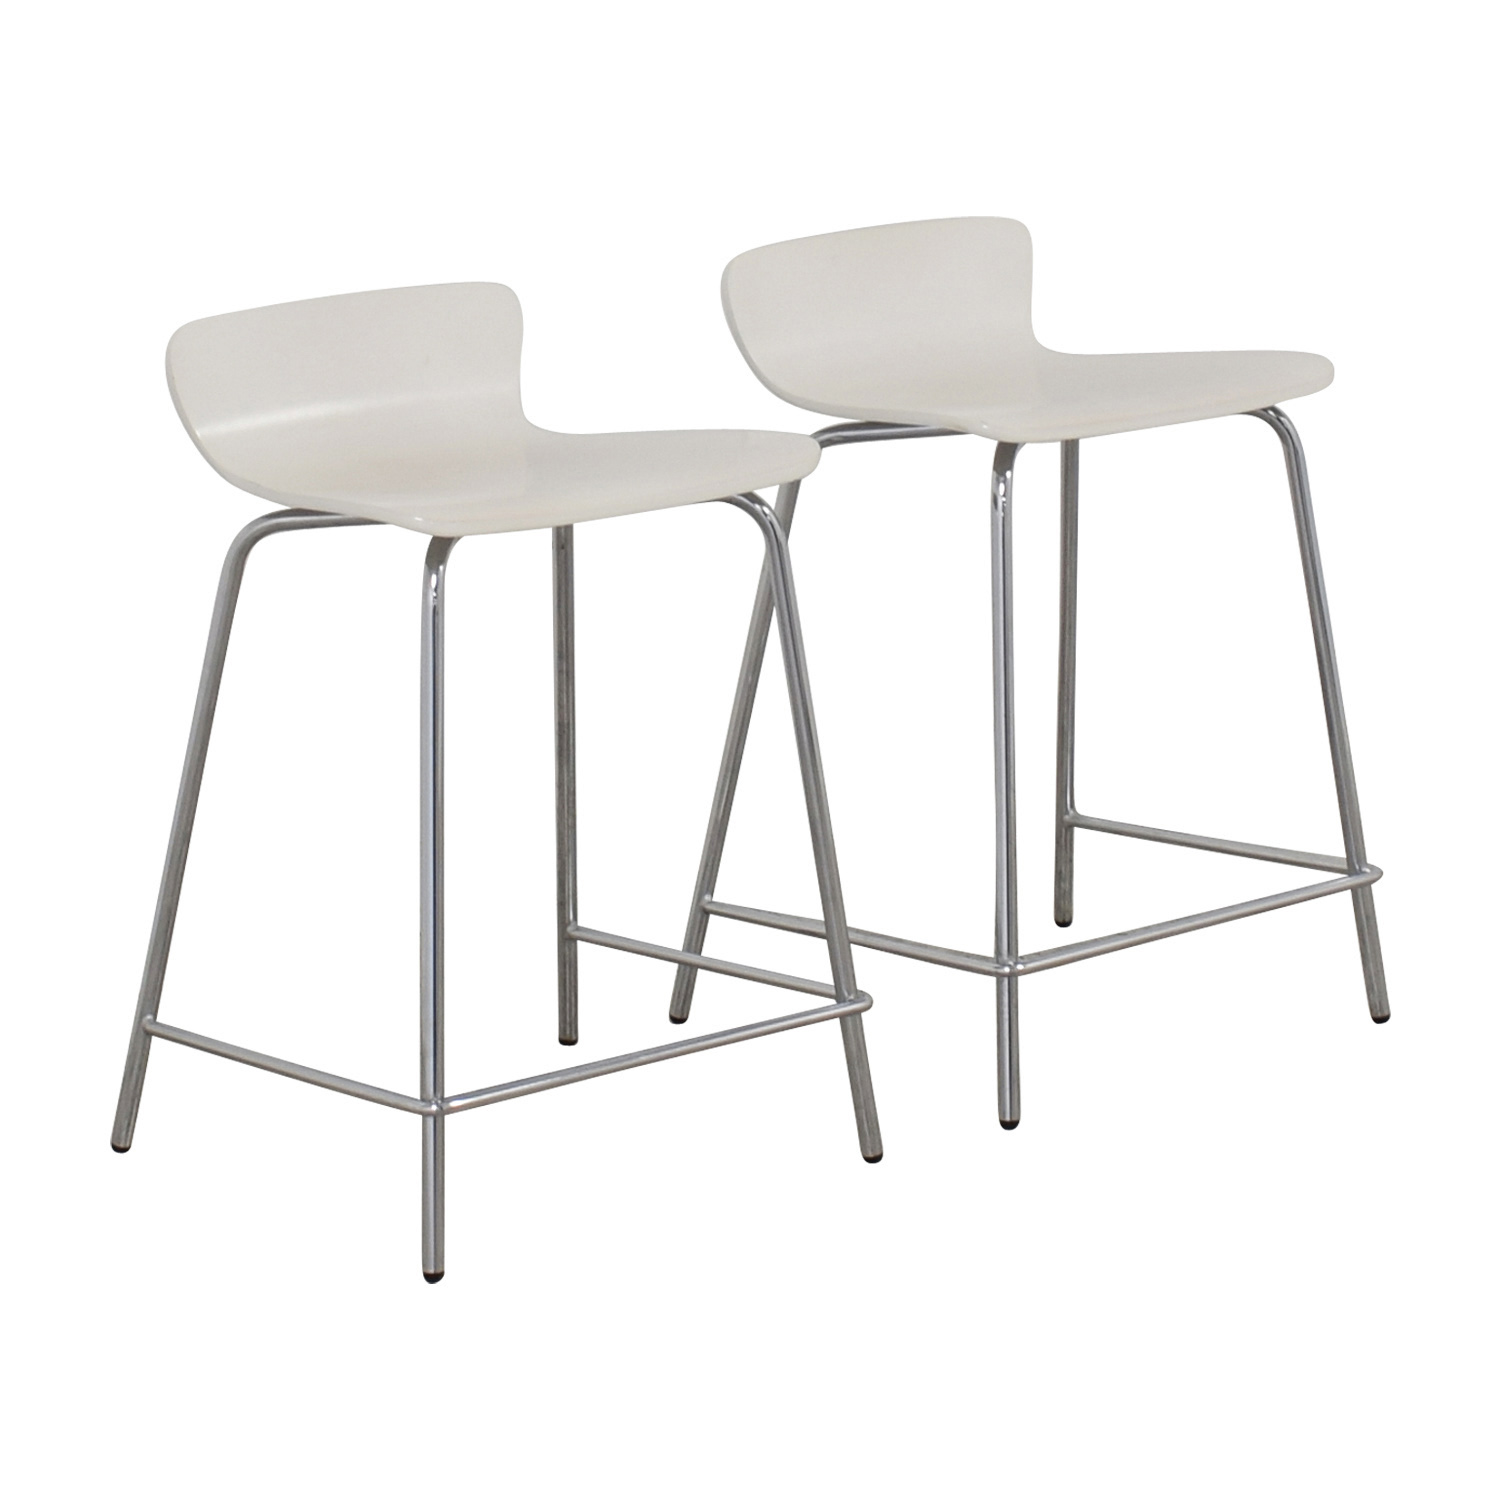 Crate and Barrel Crate and Barrel Felix White Counter Stools coupon